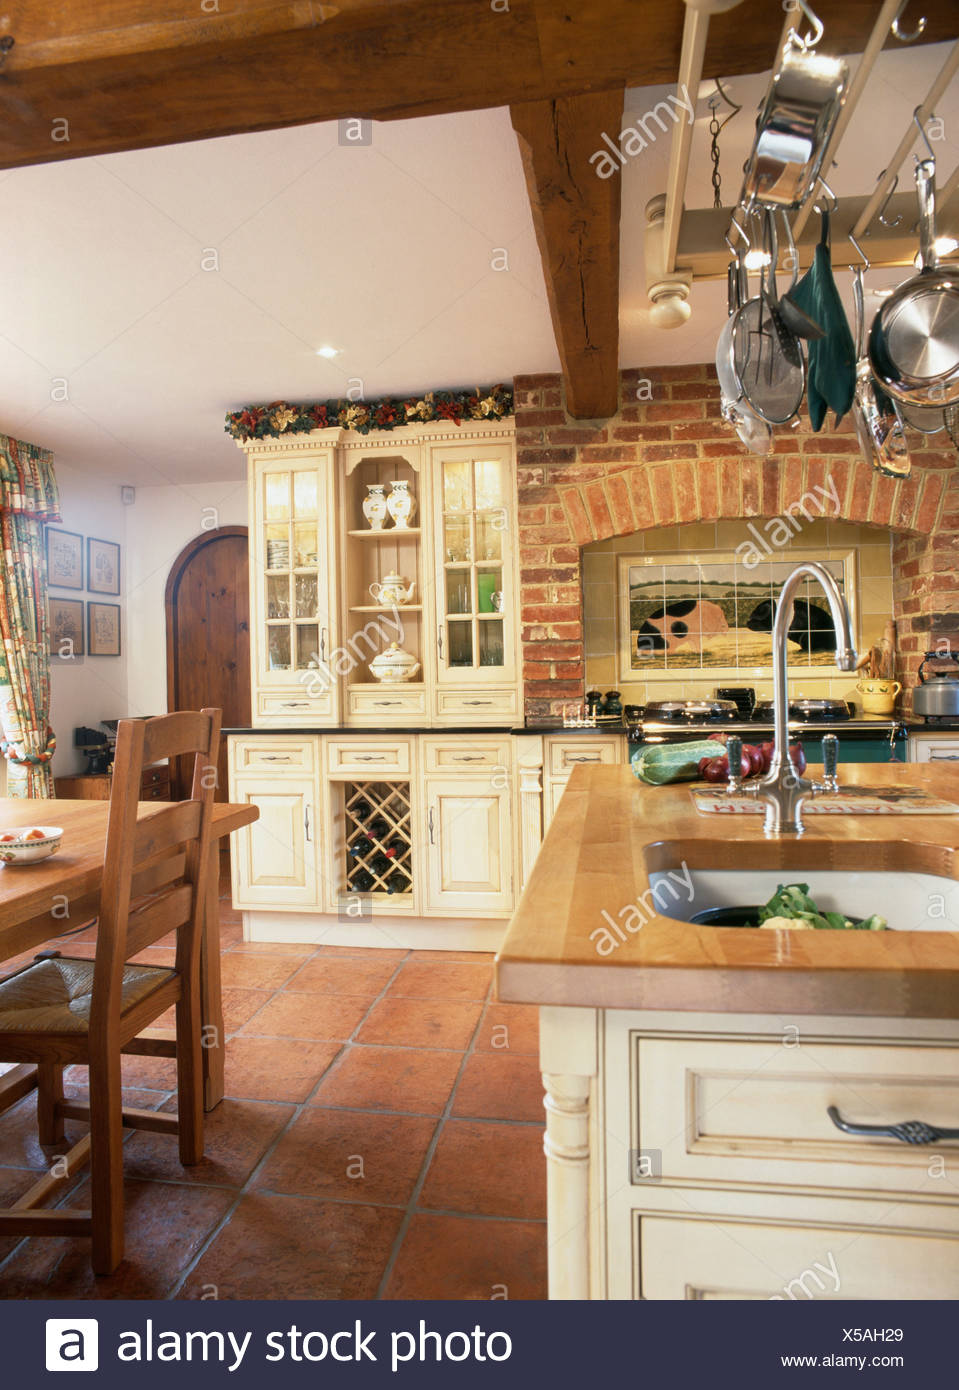 Terracotta Floor Tiles And Exposed Brick Wall In Country Kitchen